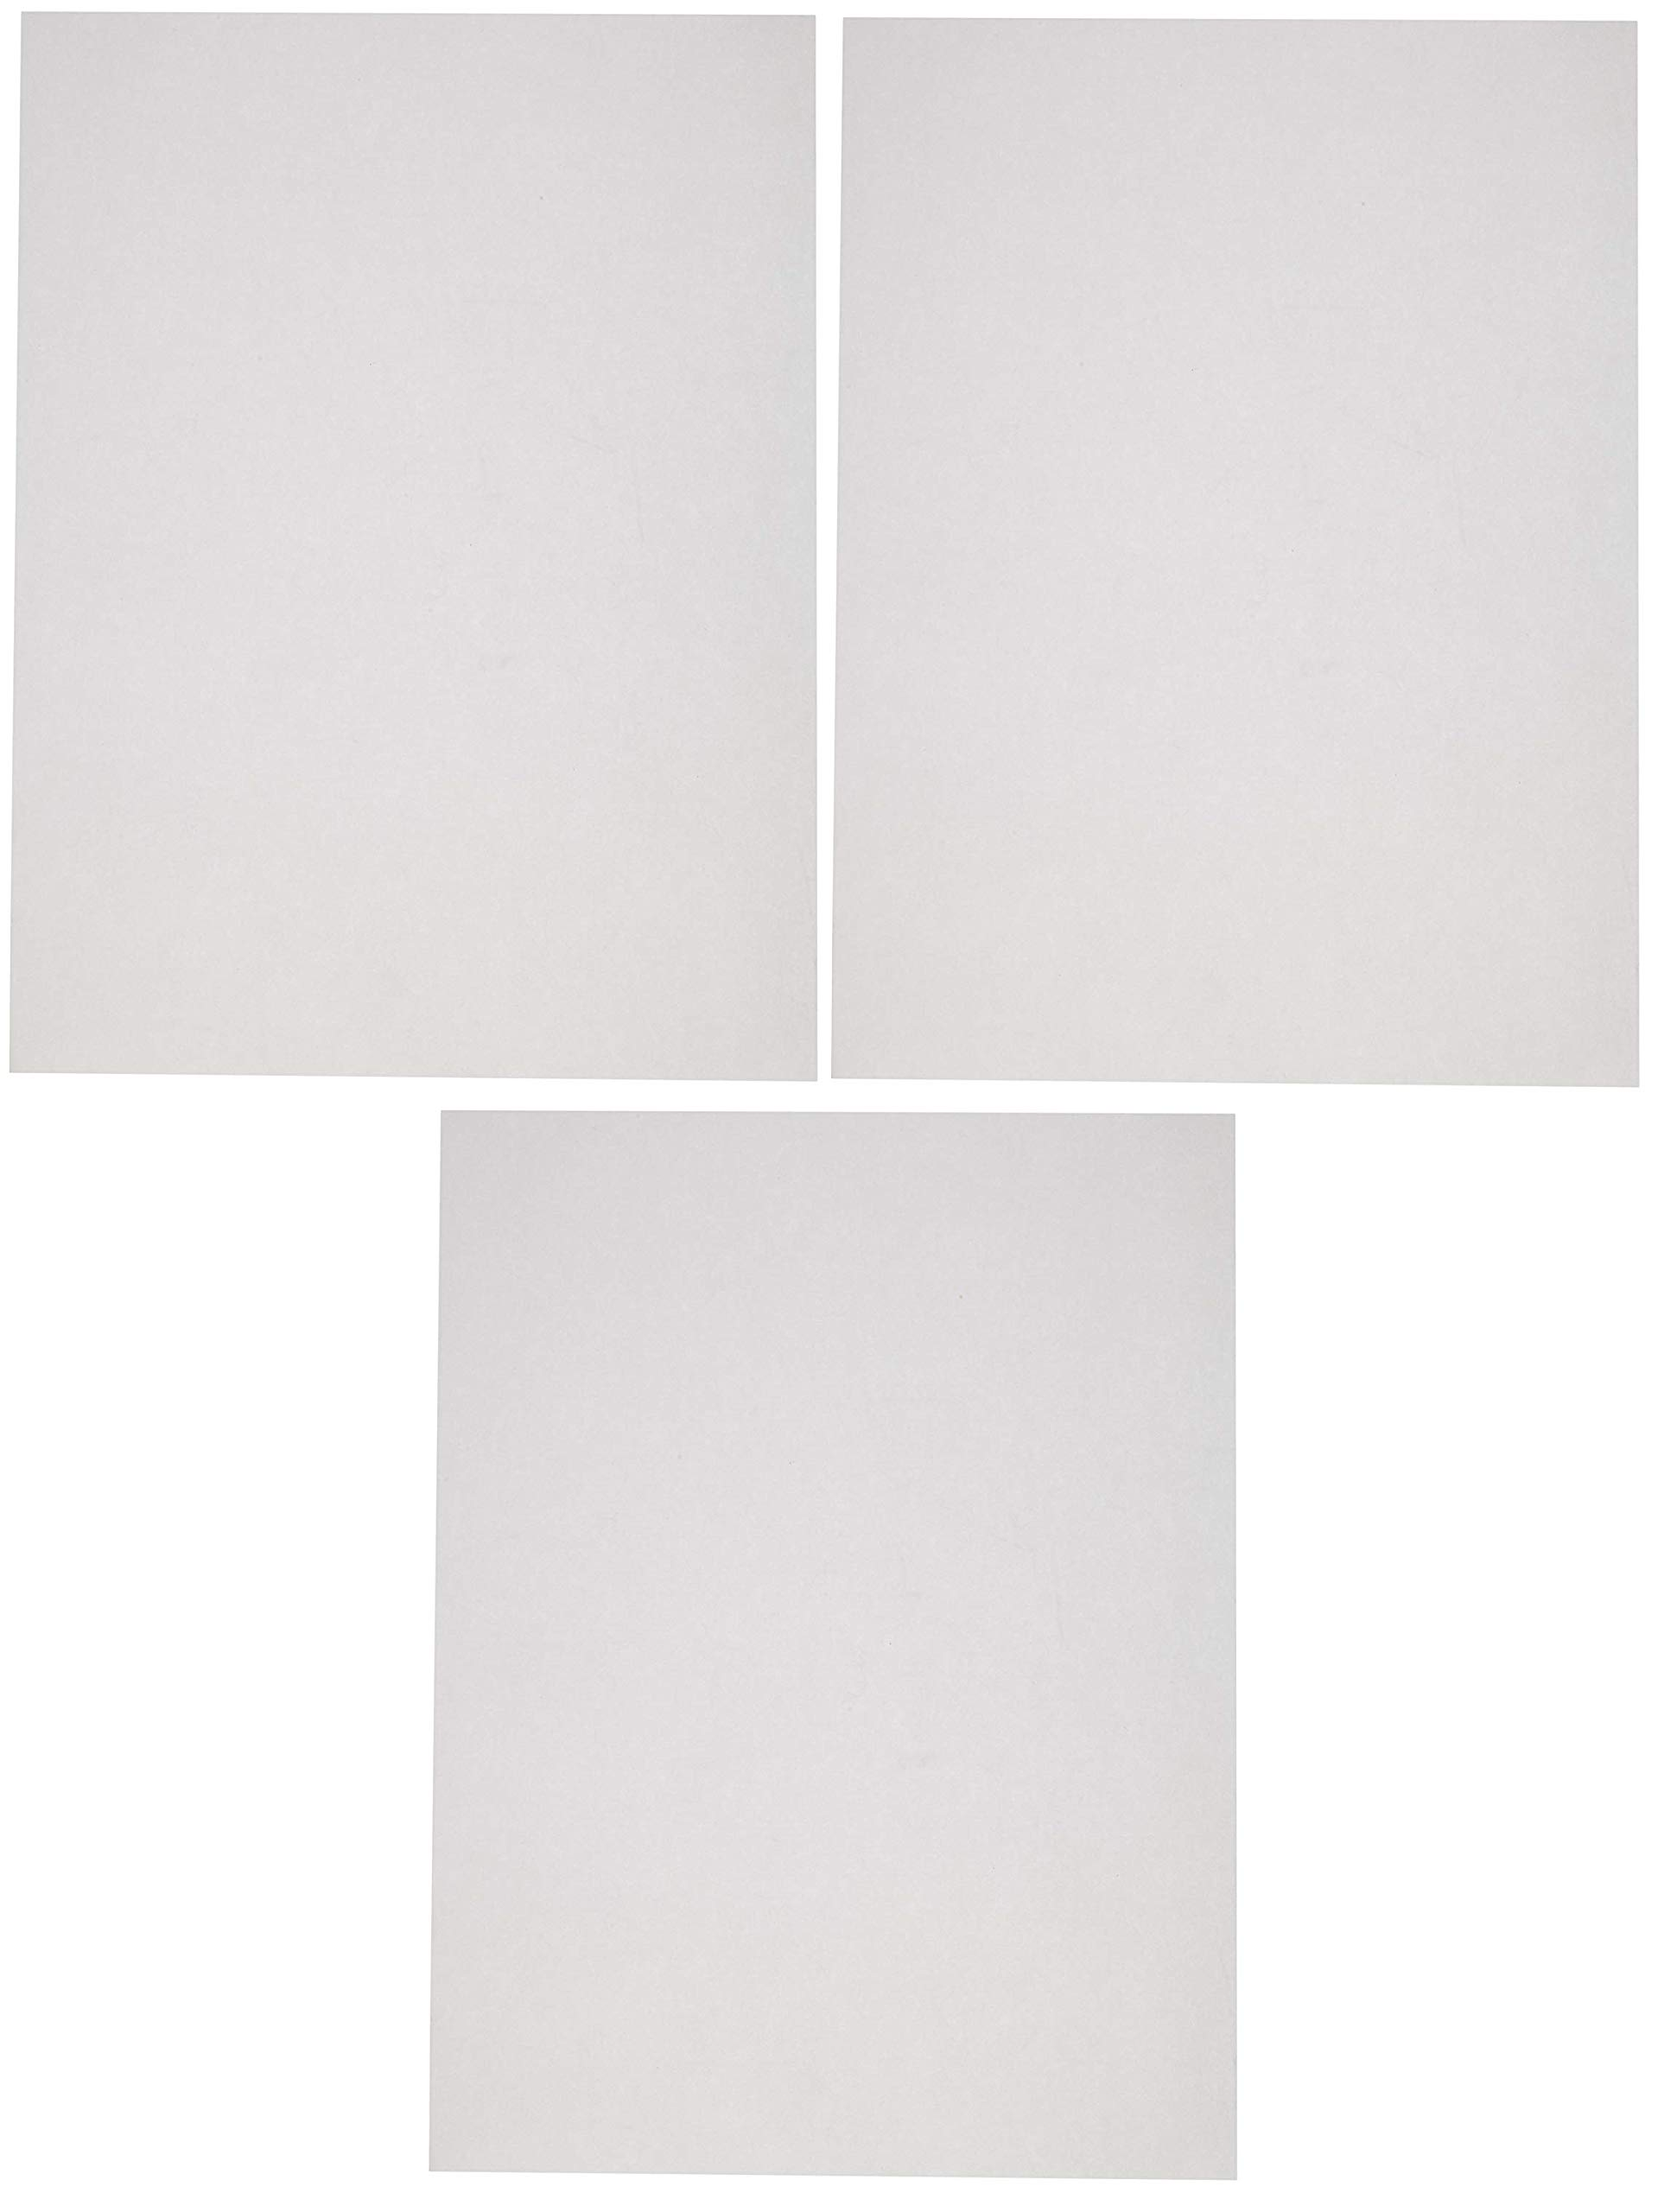 Sax Sulphite Drawing Paper, 60 lbs, 9 x 12 Inches, Extra-White, Pack of 500 (Тhrее Расk)